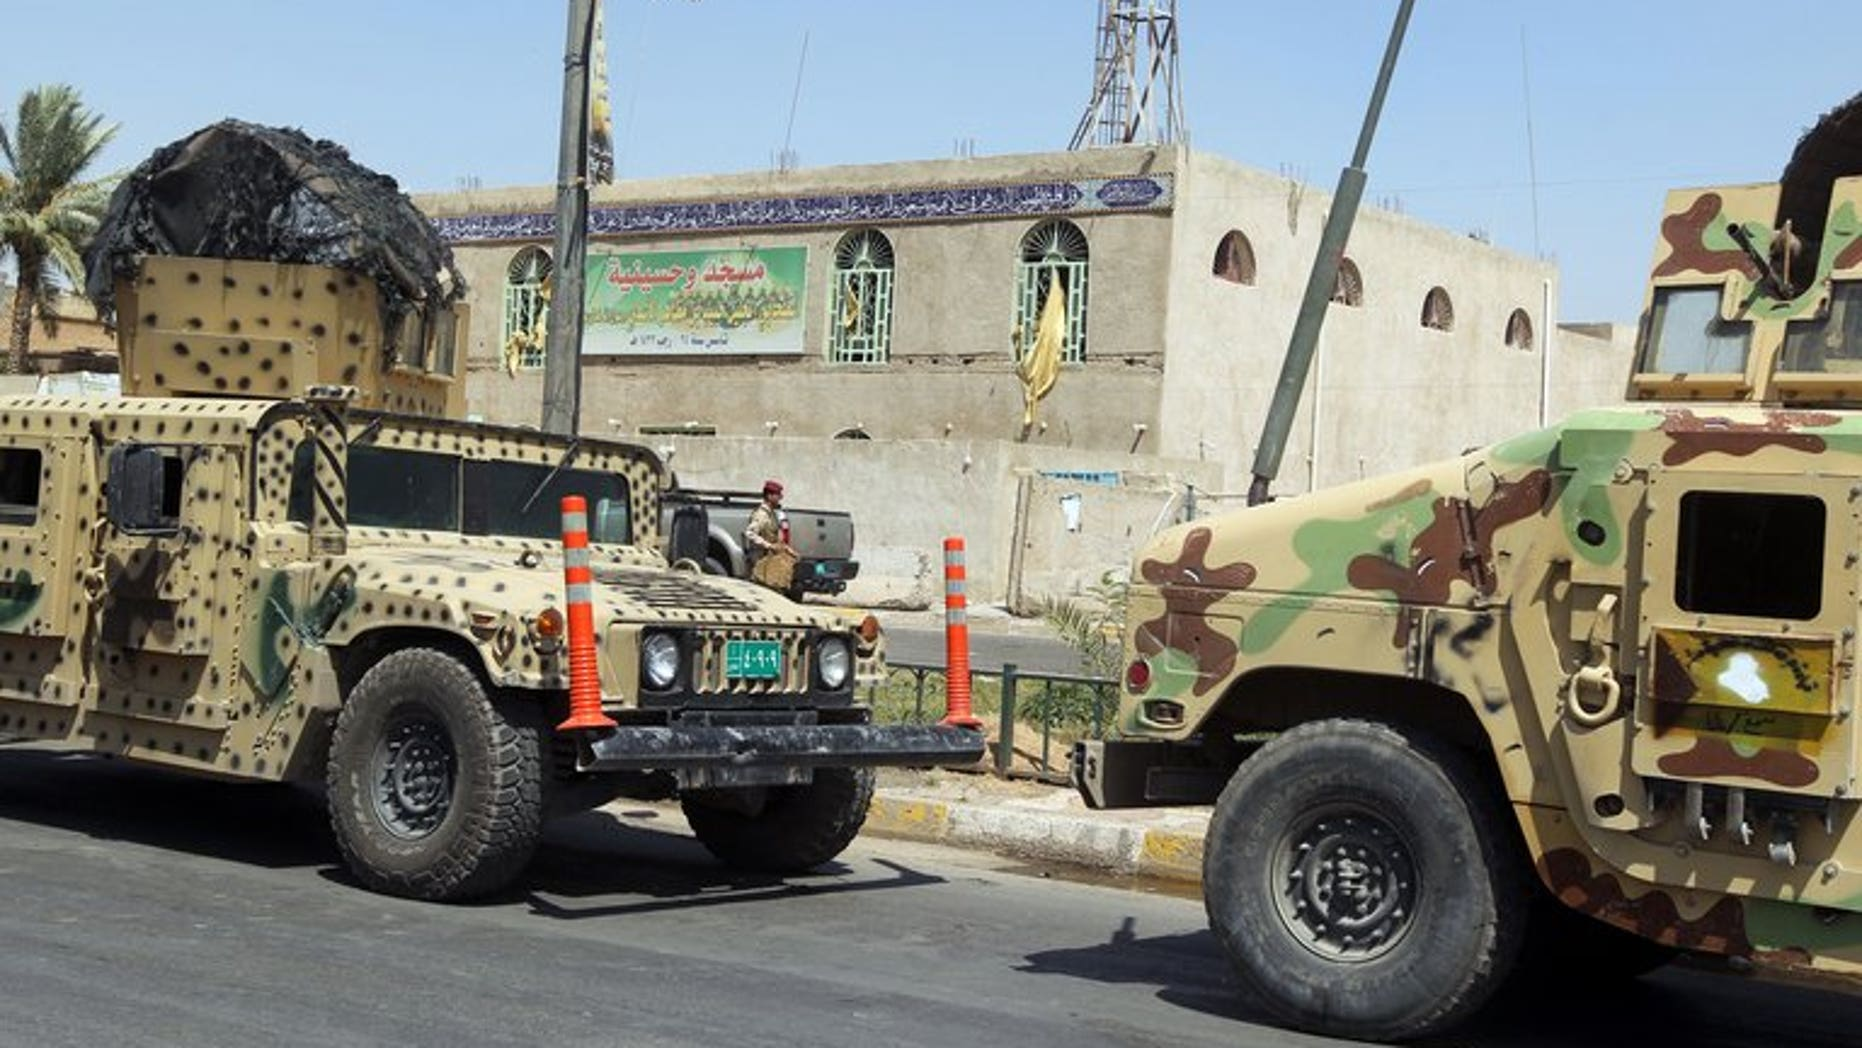 Iraqi military vehicles in front of a Shiite mosque in Baghdad on Tuesday following a suicide bombing. A suicide bomb attack in north Iraq on Wednesday killed the leader of a local political party and four relatives, officials said, on the eve of provincial elections his bloc was to participate in.